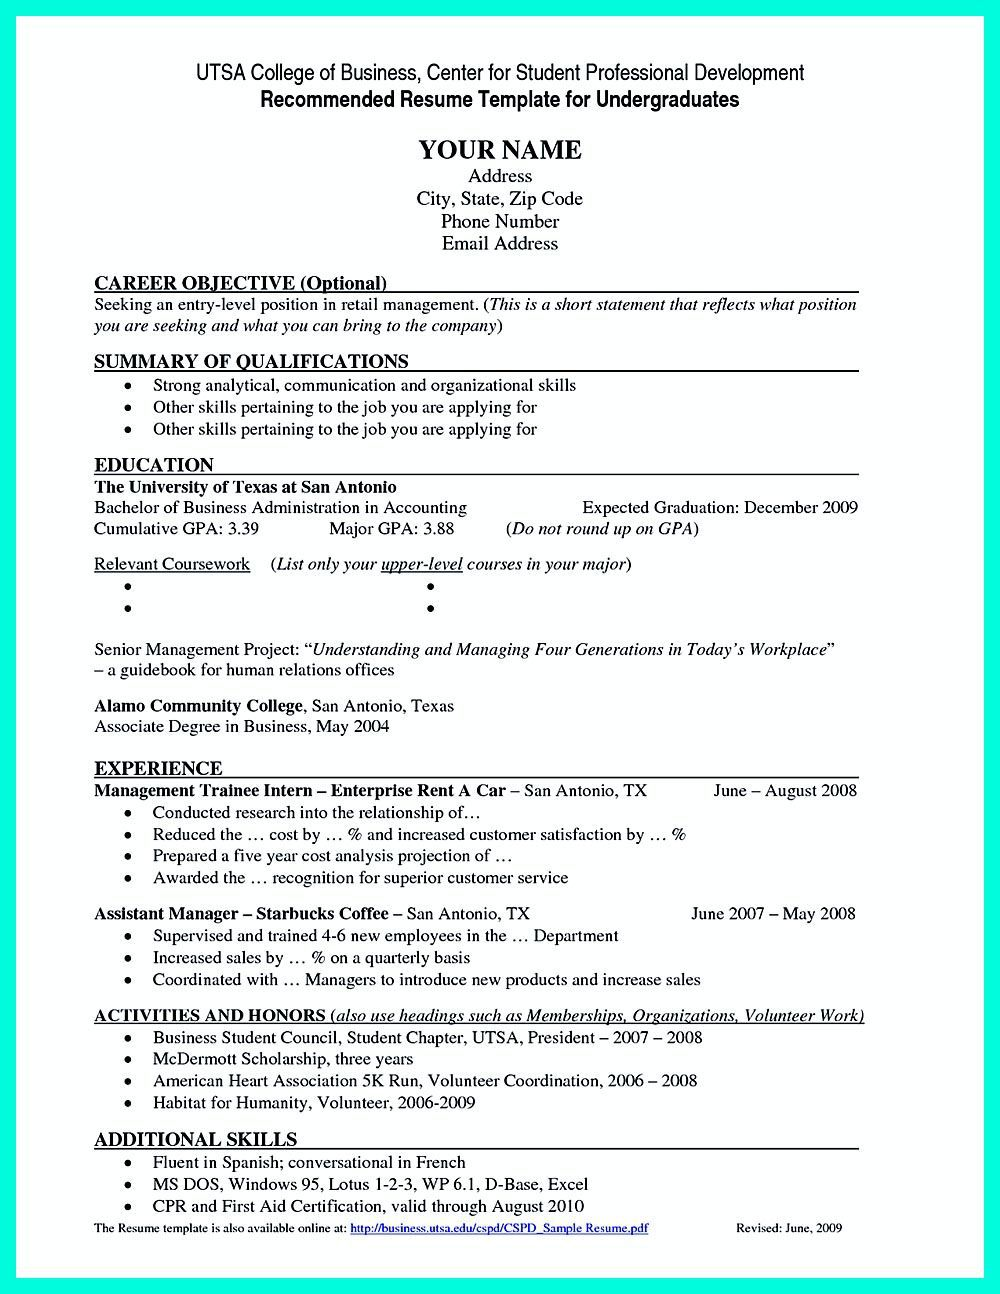 001 Stupendou Curriculum Vitae Template Student High Resolution  Sample College Undergraduate Example For Research PaperFull